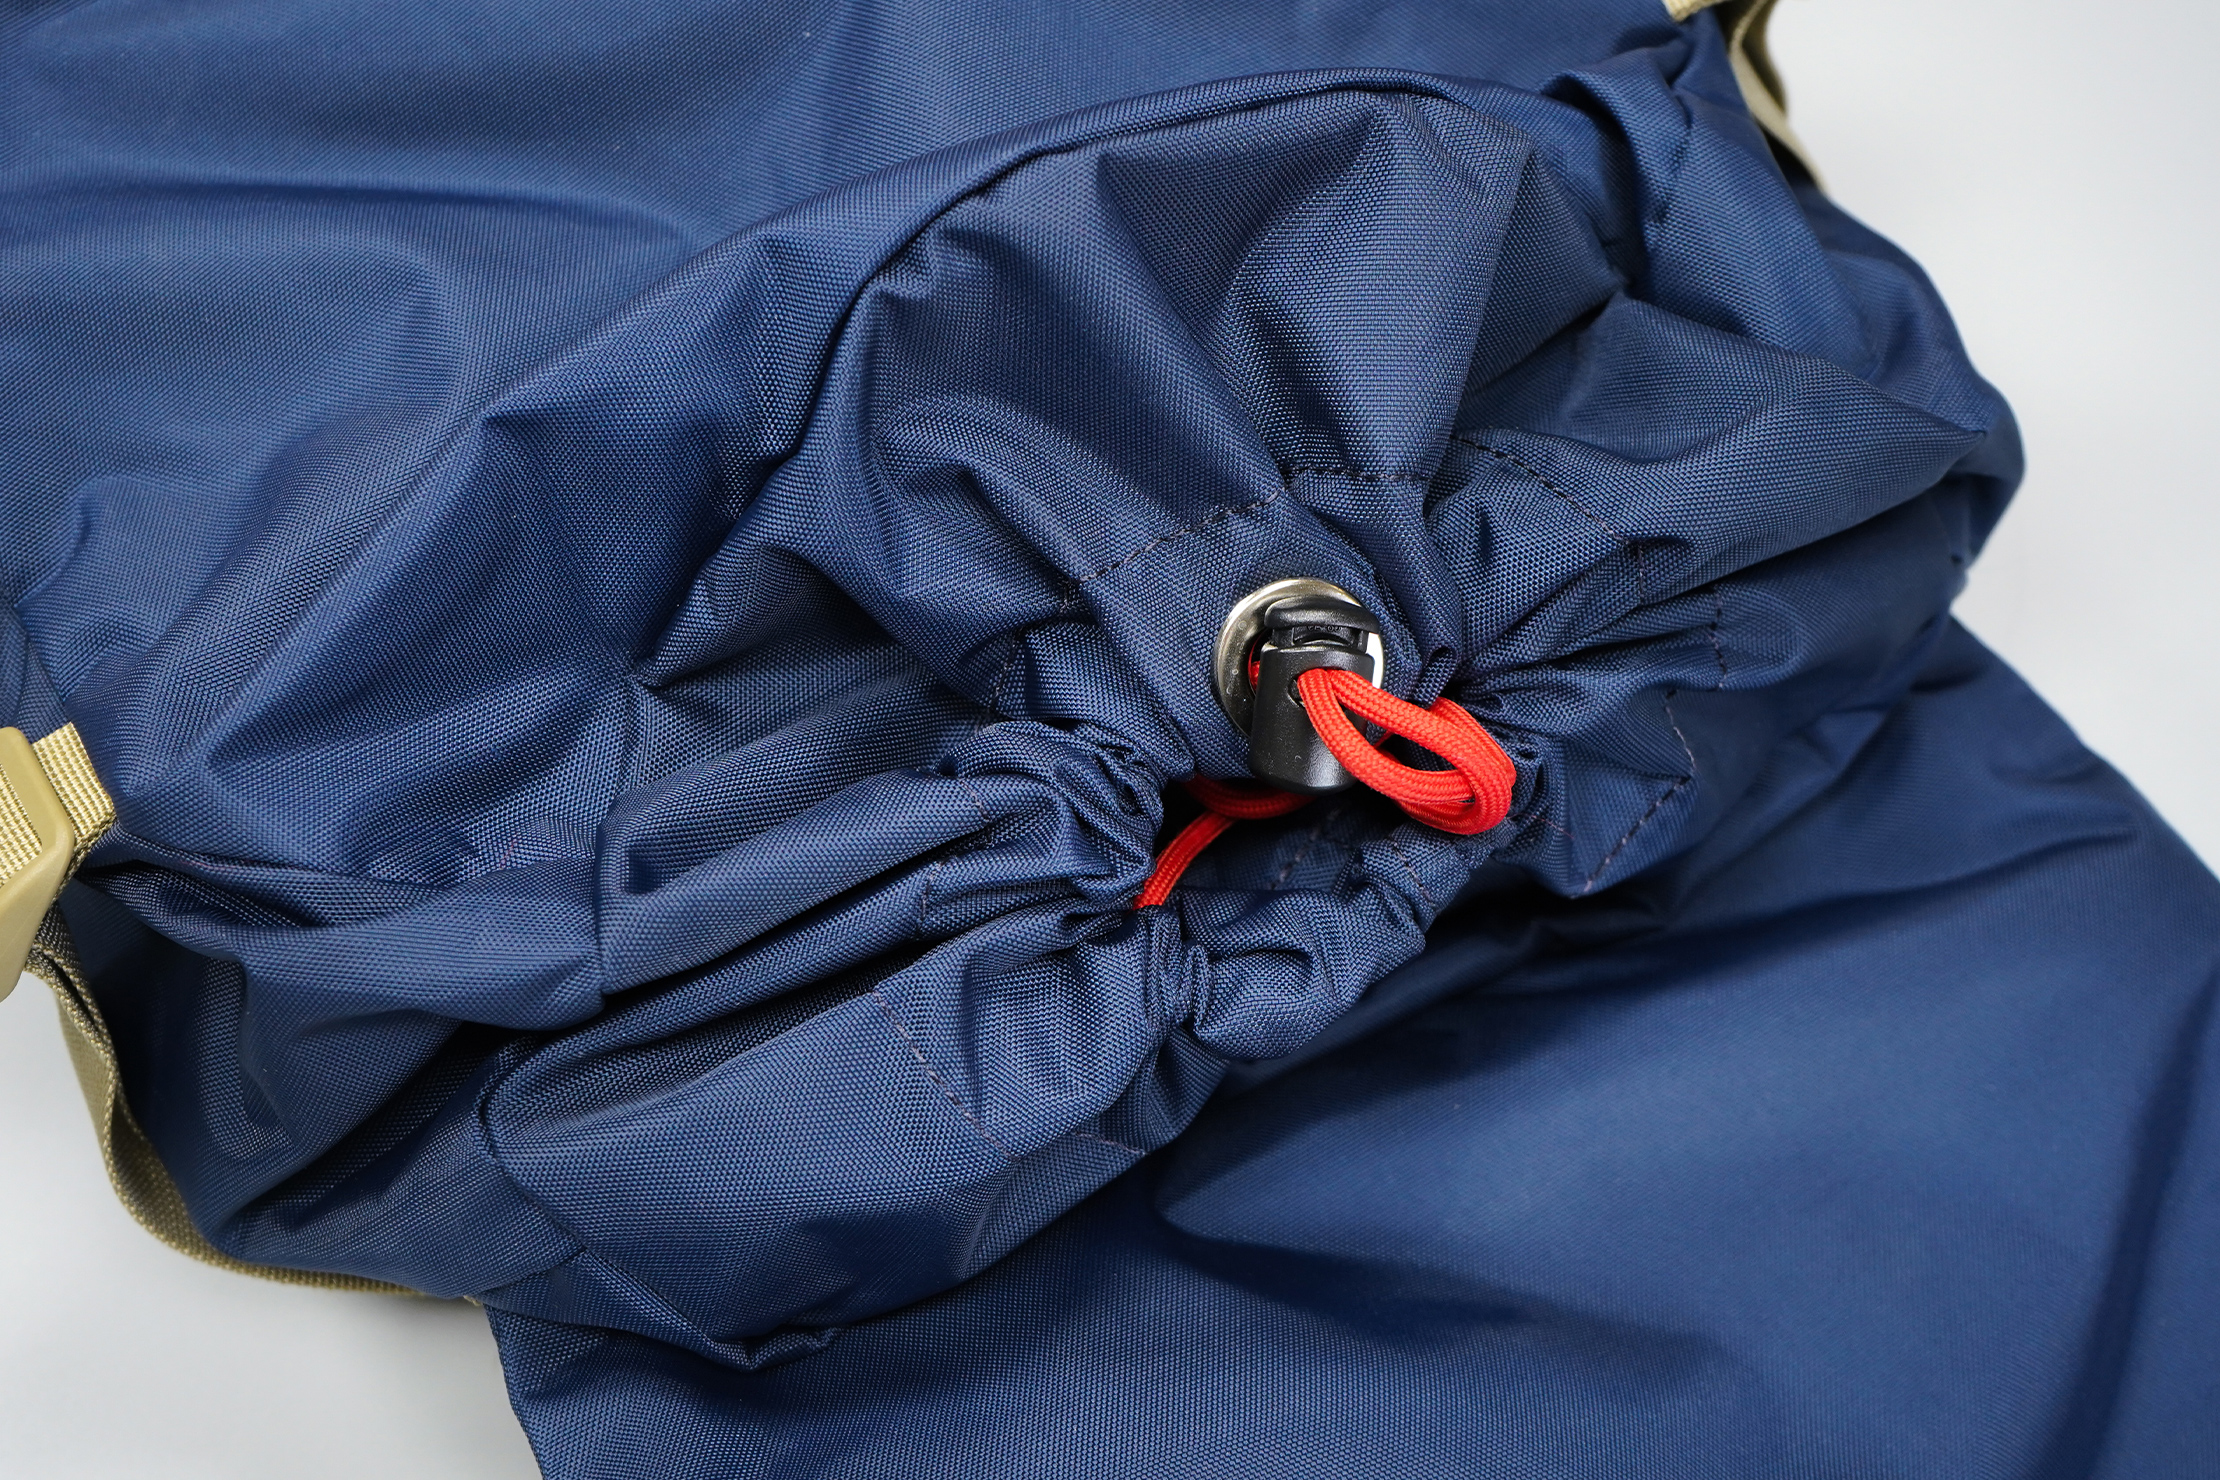 Topo Designs Rover Pack Classic | It's a lengthy drawstring, but you can tuck it in for a cleaner look